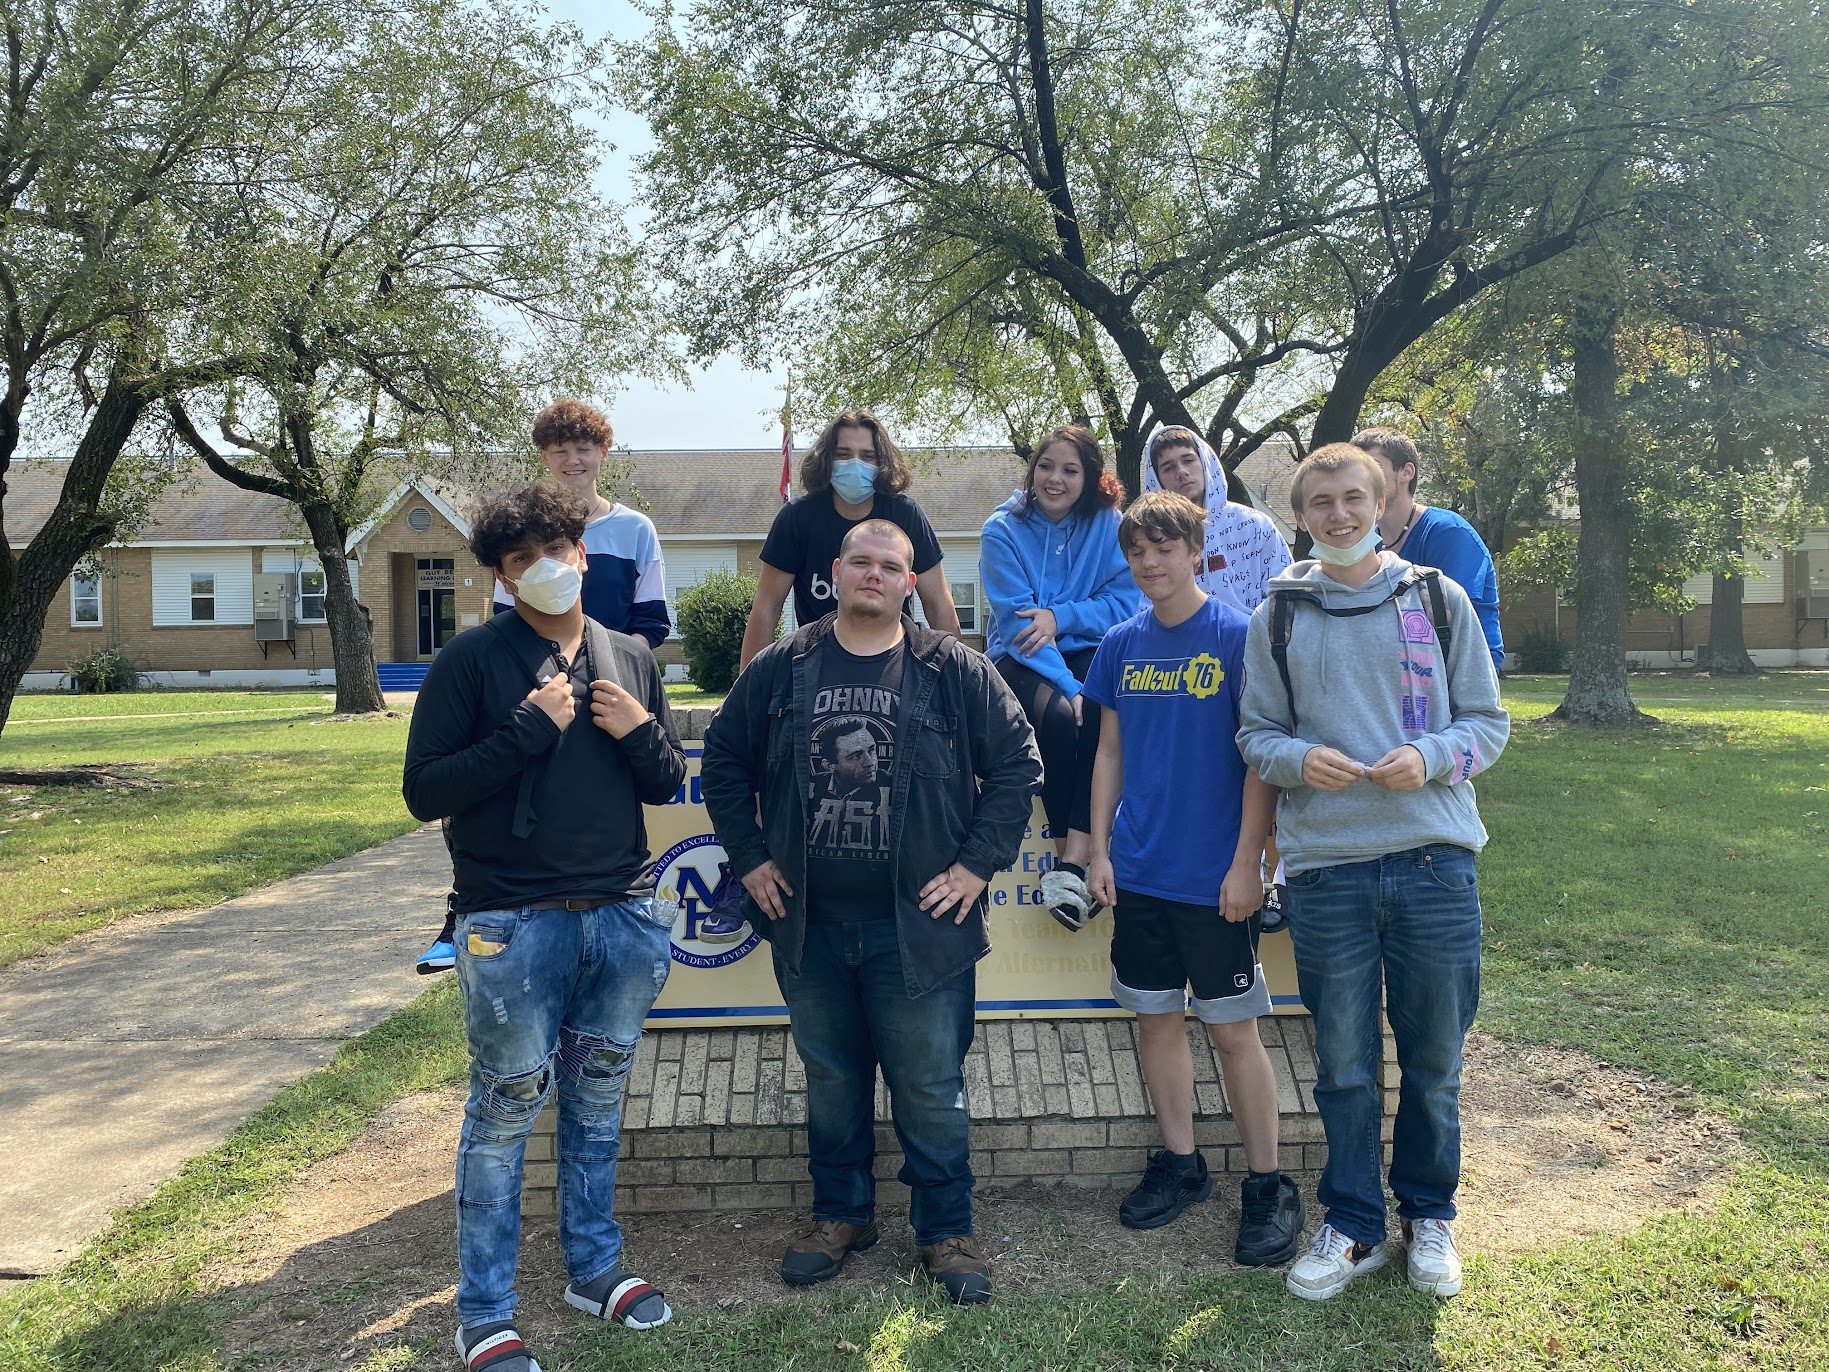 Group of students pose in front of school wearing their Bomber blue outfits